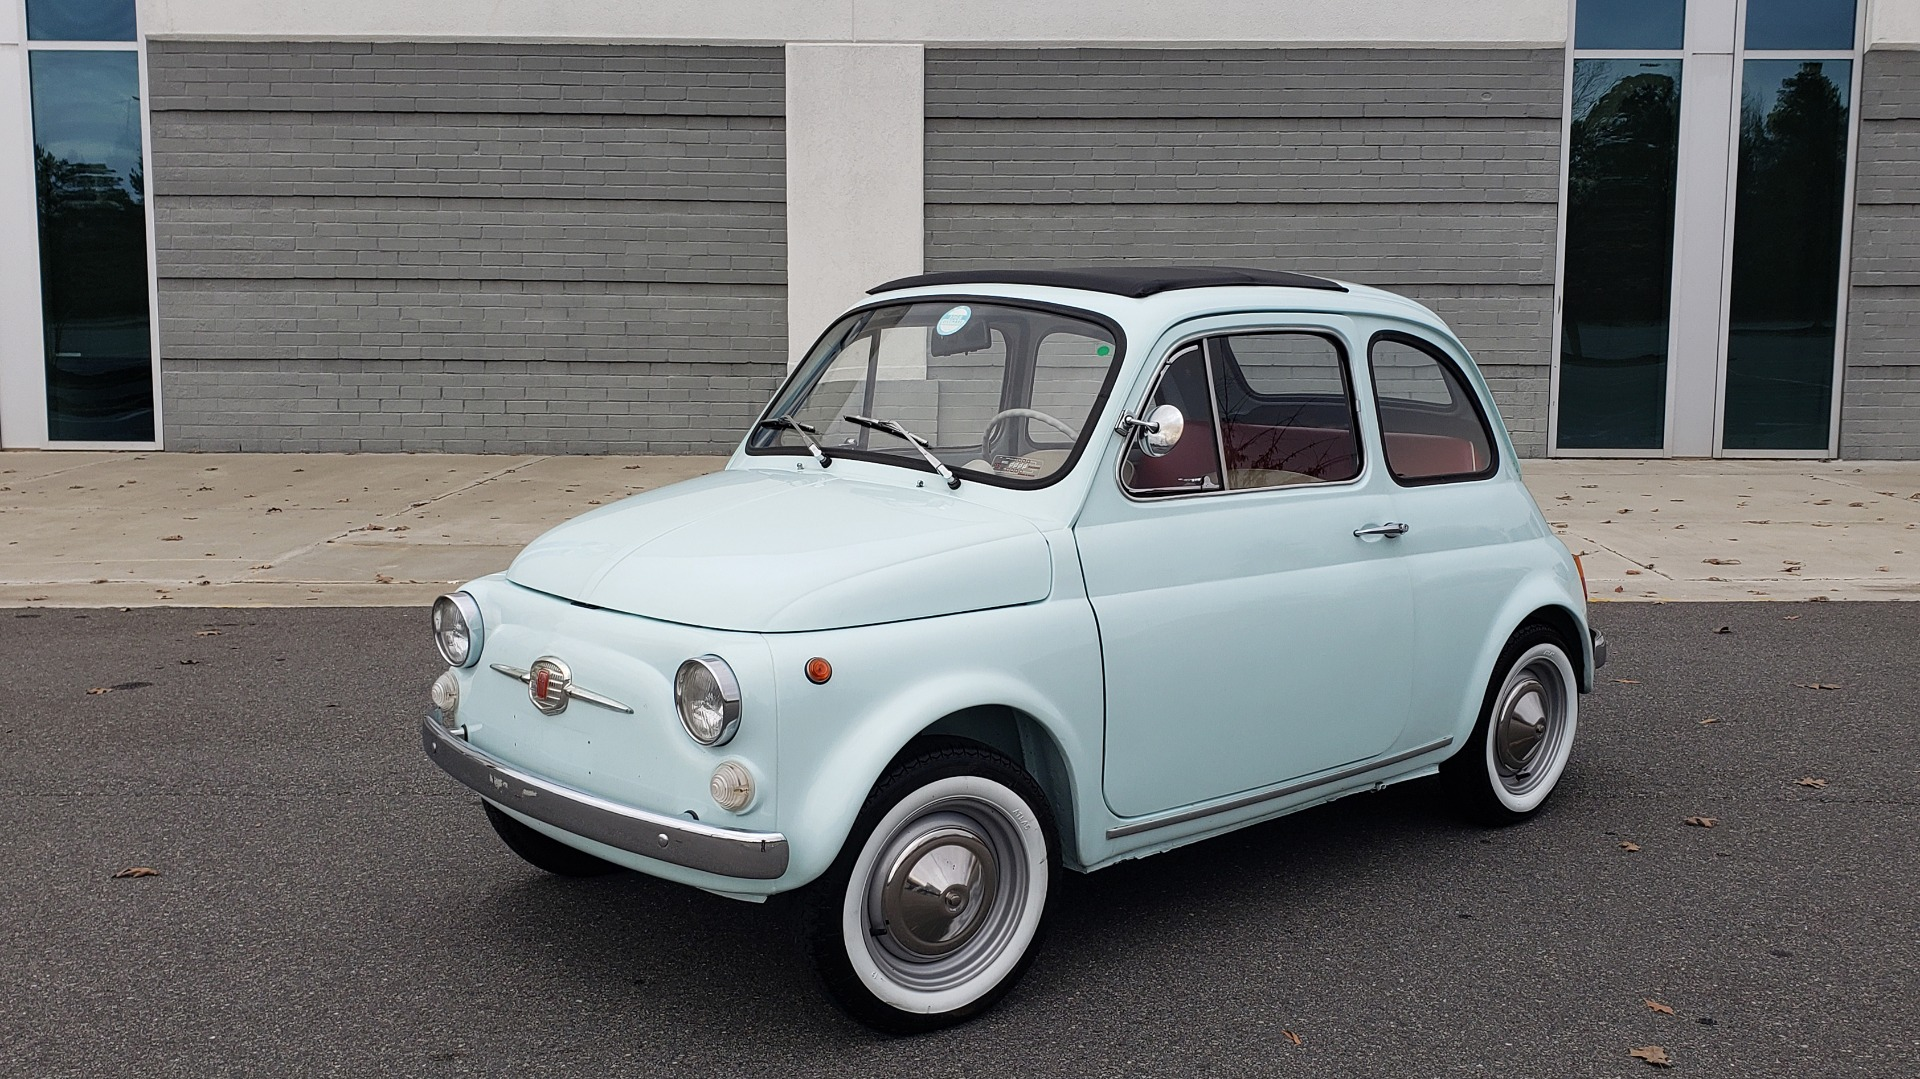 Used 1968 FIAT 500 NUOVA / SOFT-TOP / LUGGAGE RACK / RESTORED, LIKE NEW for sale $21,900 at Formula Imports in Charlotte NC 28227 11